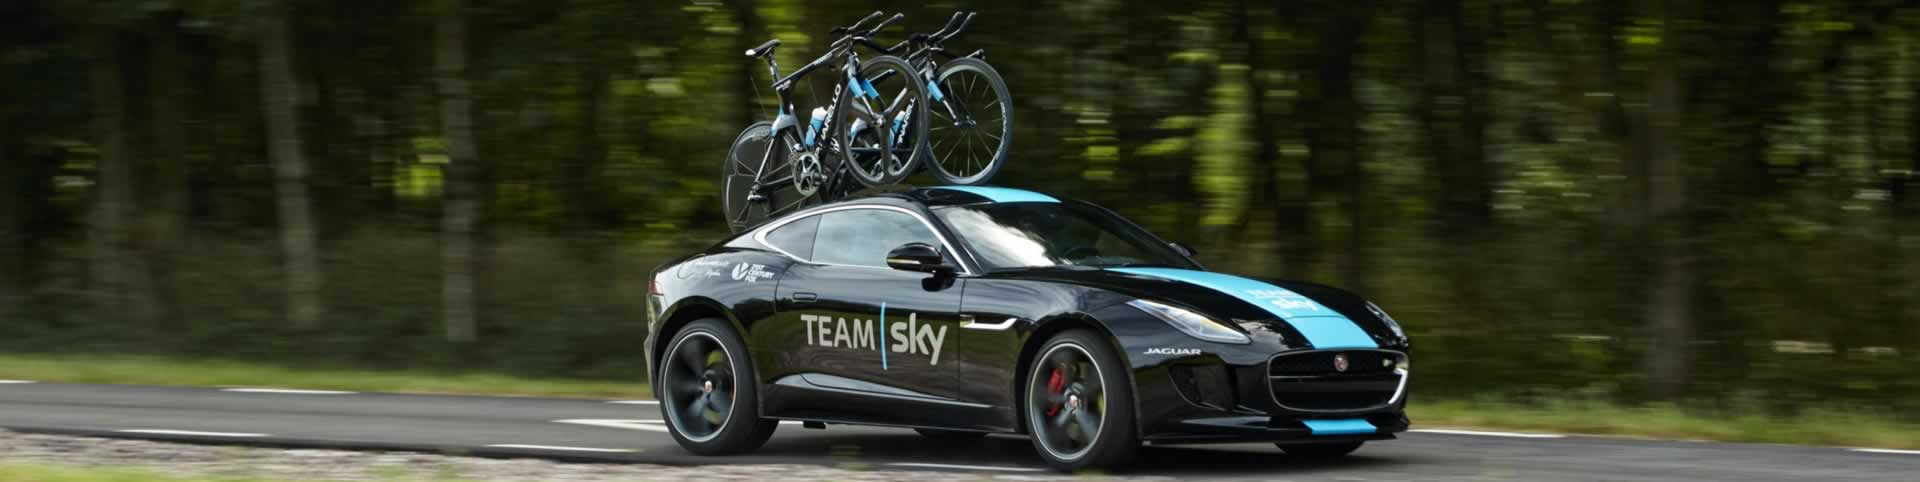 SKY_TEAM_F-TYPE_WOODLAND